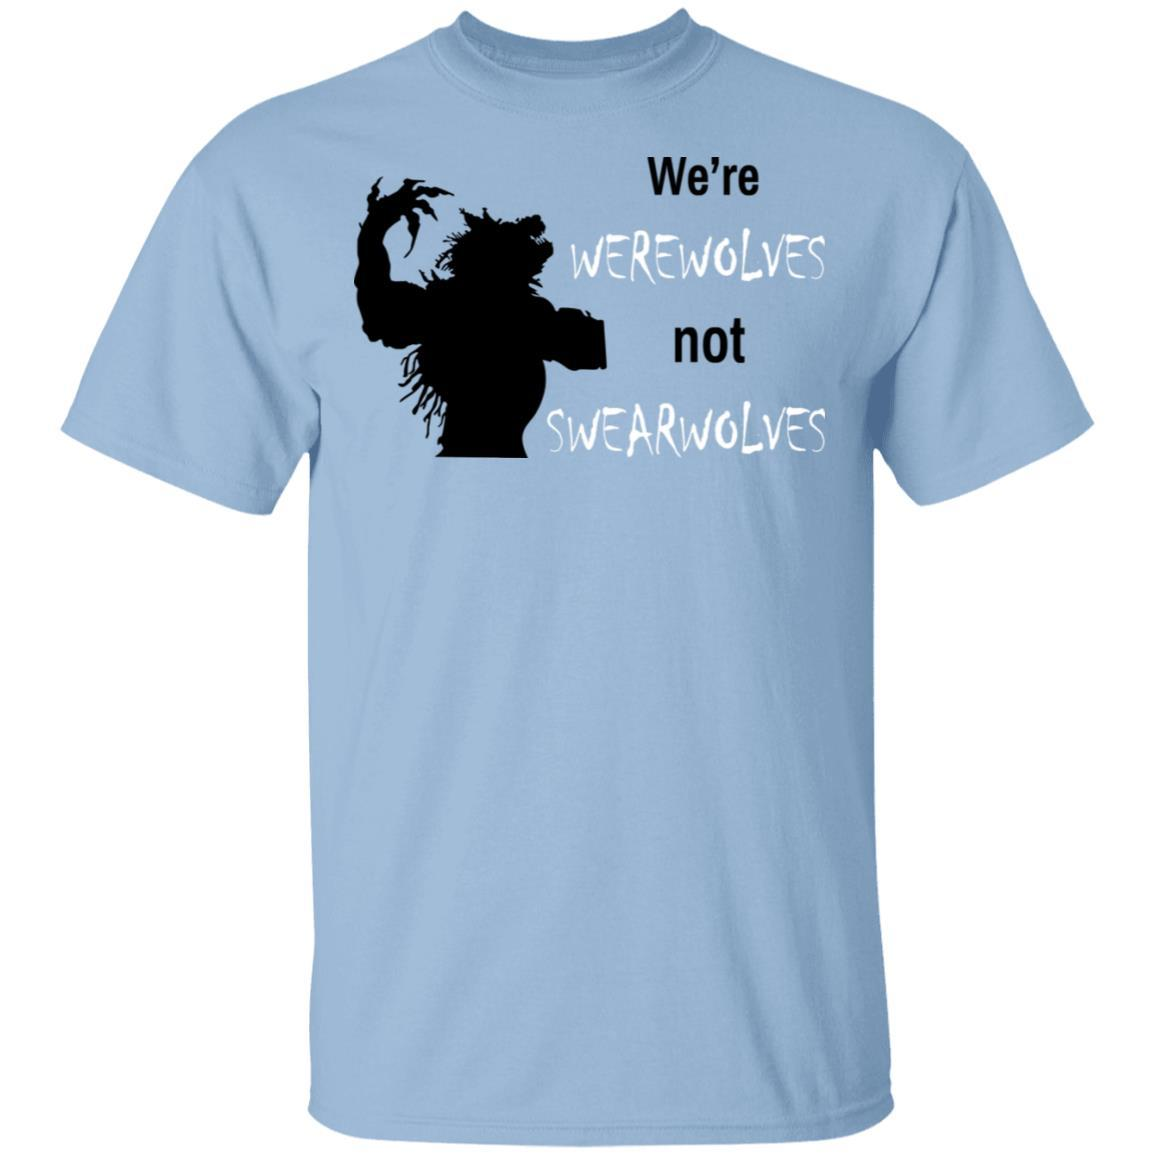 We're Werewolves Not Swearwolves T-Shirts, Hoodies 1049-9962-87130073-48168 - Tee Ript